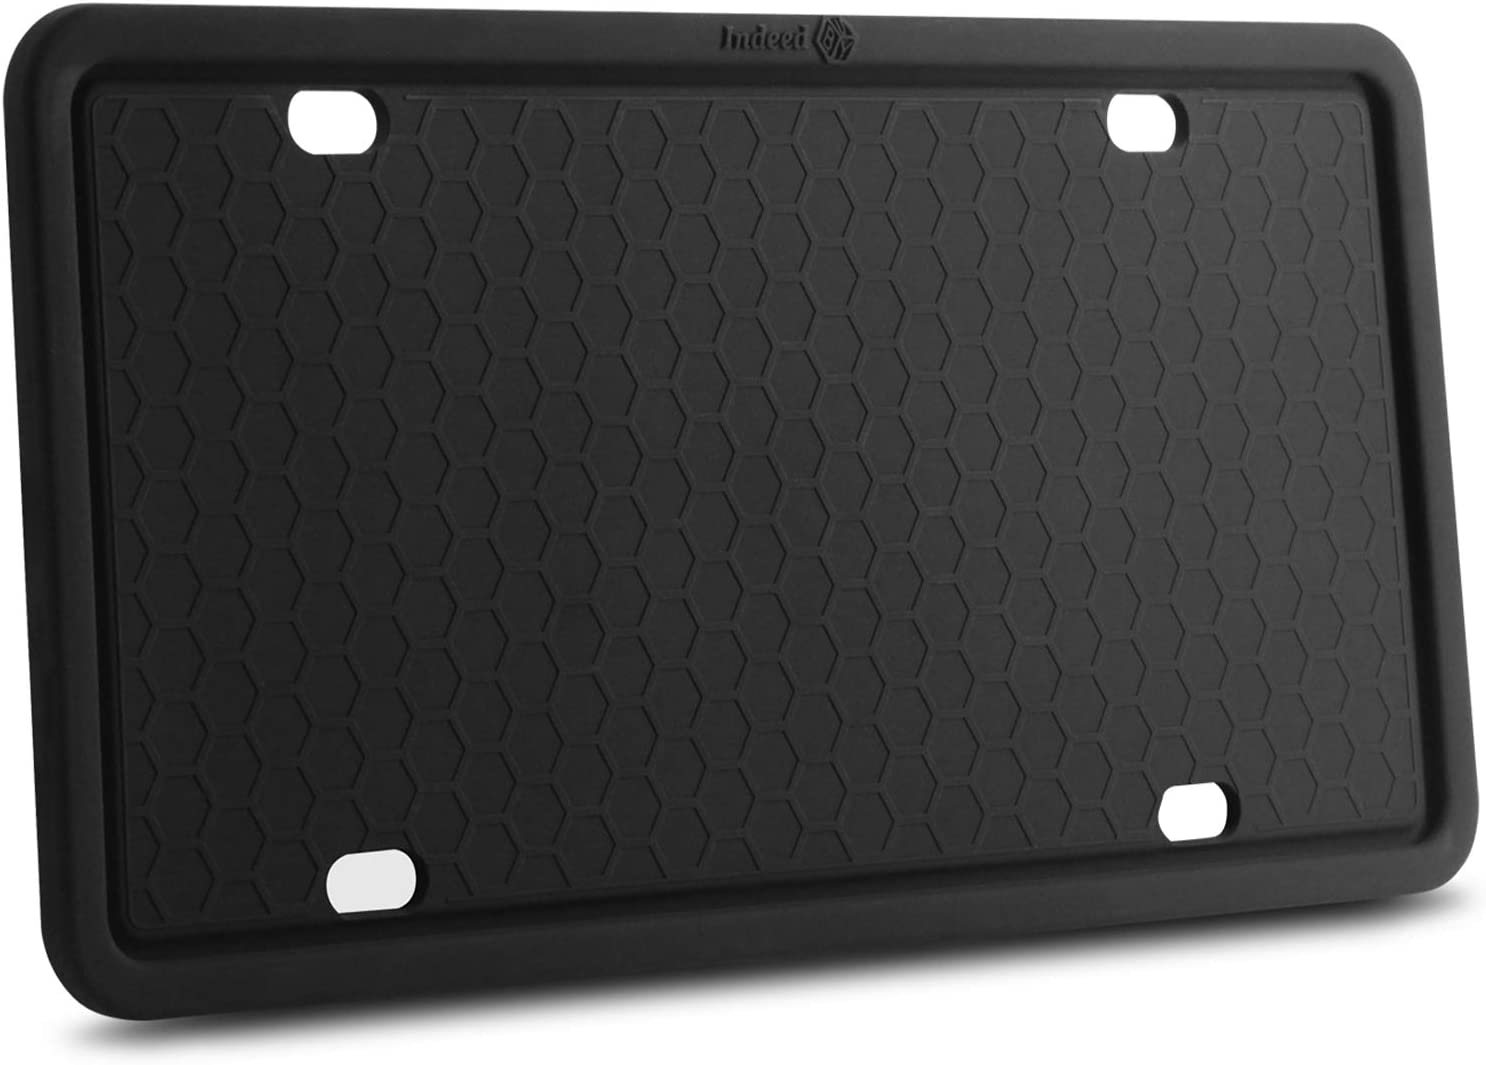 Weather-Proof - Black Rust-Proof - 2 Pack Black Diamond Auto Silicone License Plate Frame - Universal FIT American Designed Rattle-Proof